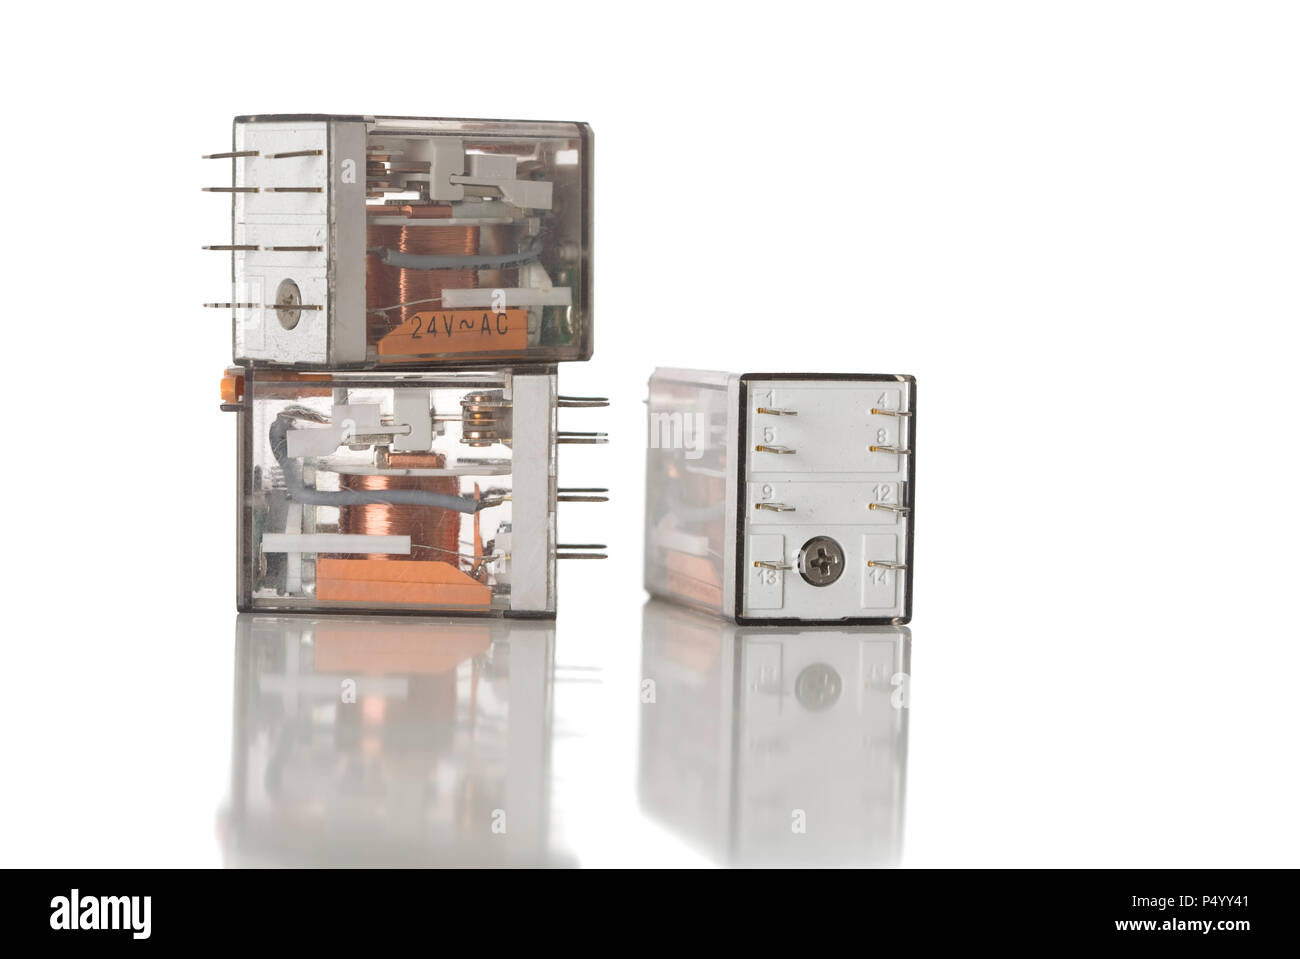 Electrical Relay Switch Stock Photos Power Three Control Relays On White Image